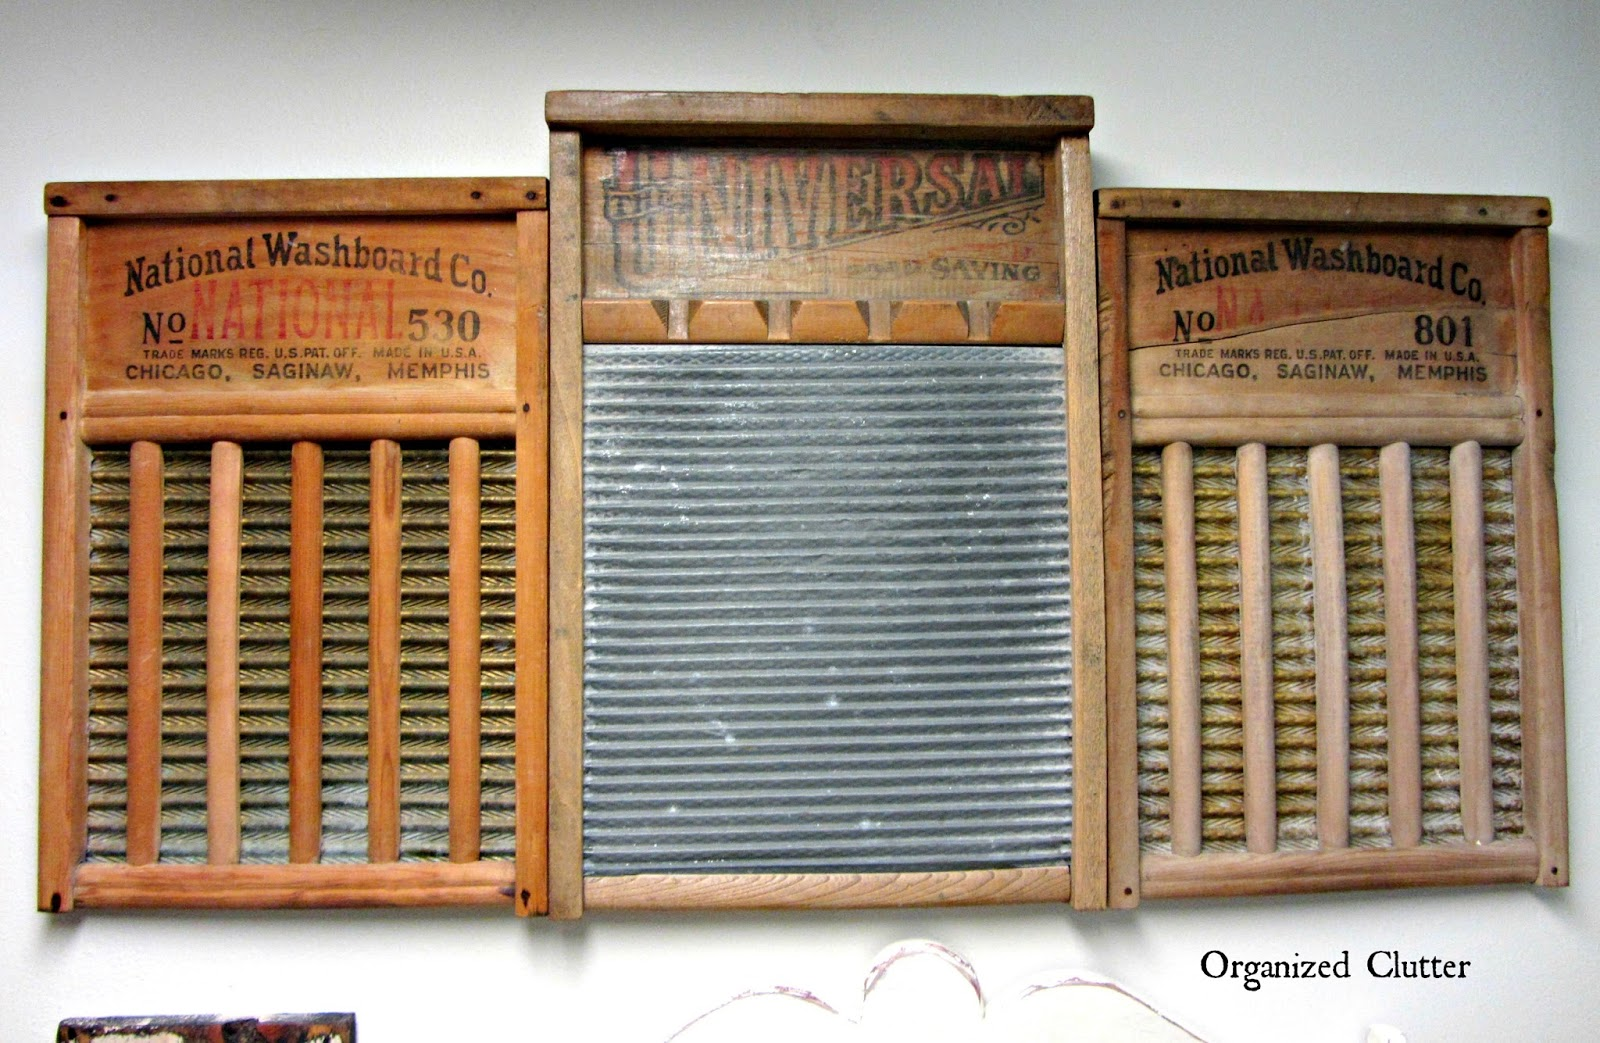 Unique Upcycled Washboard Art organizedclutterqueen blogspot